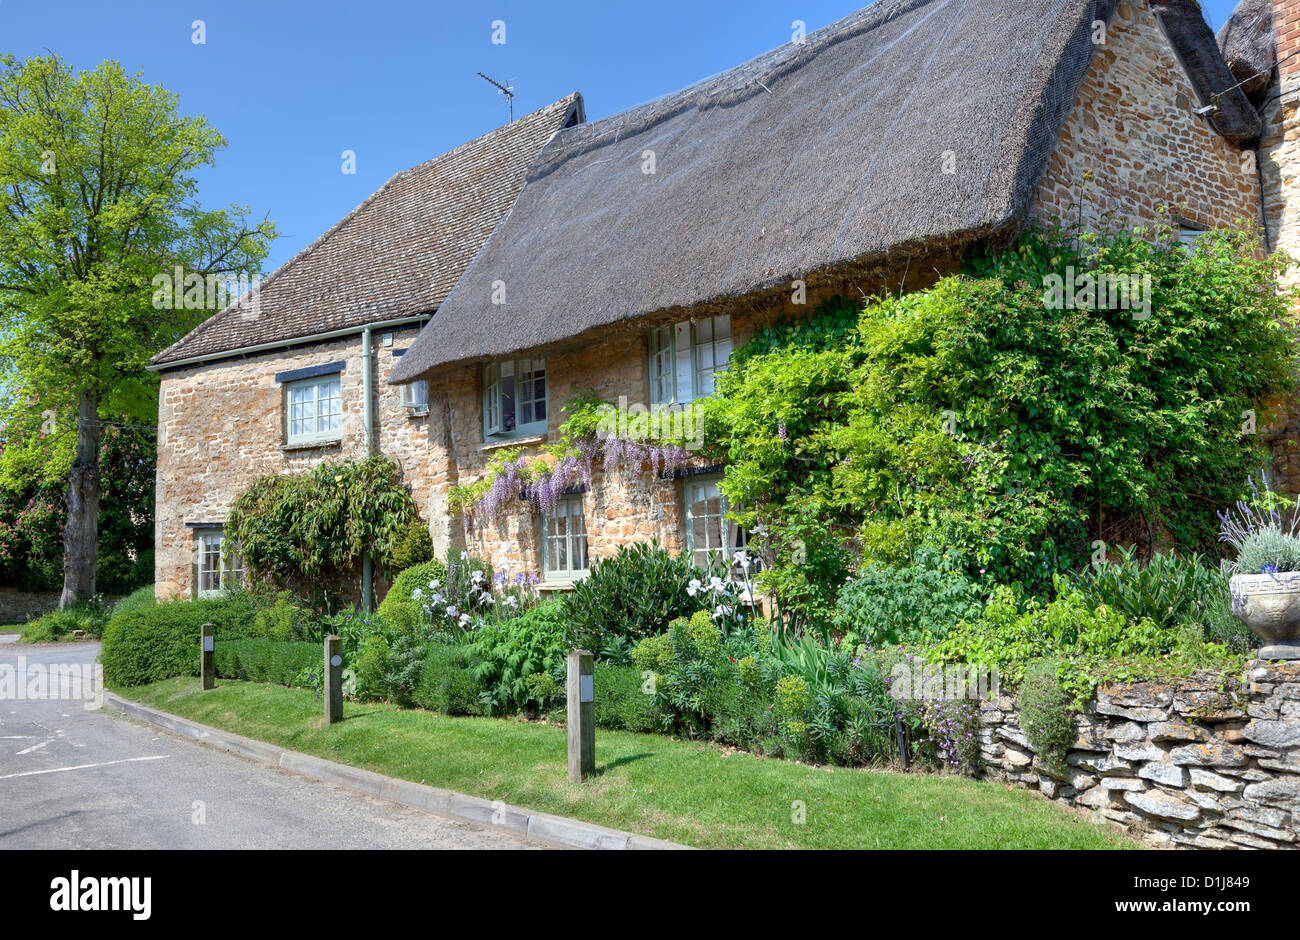 Thatched cottage with pretty garden, Kingham, Oxfordshire, England - Stock Image